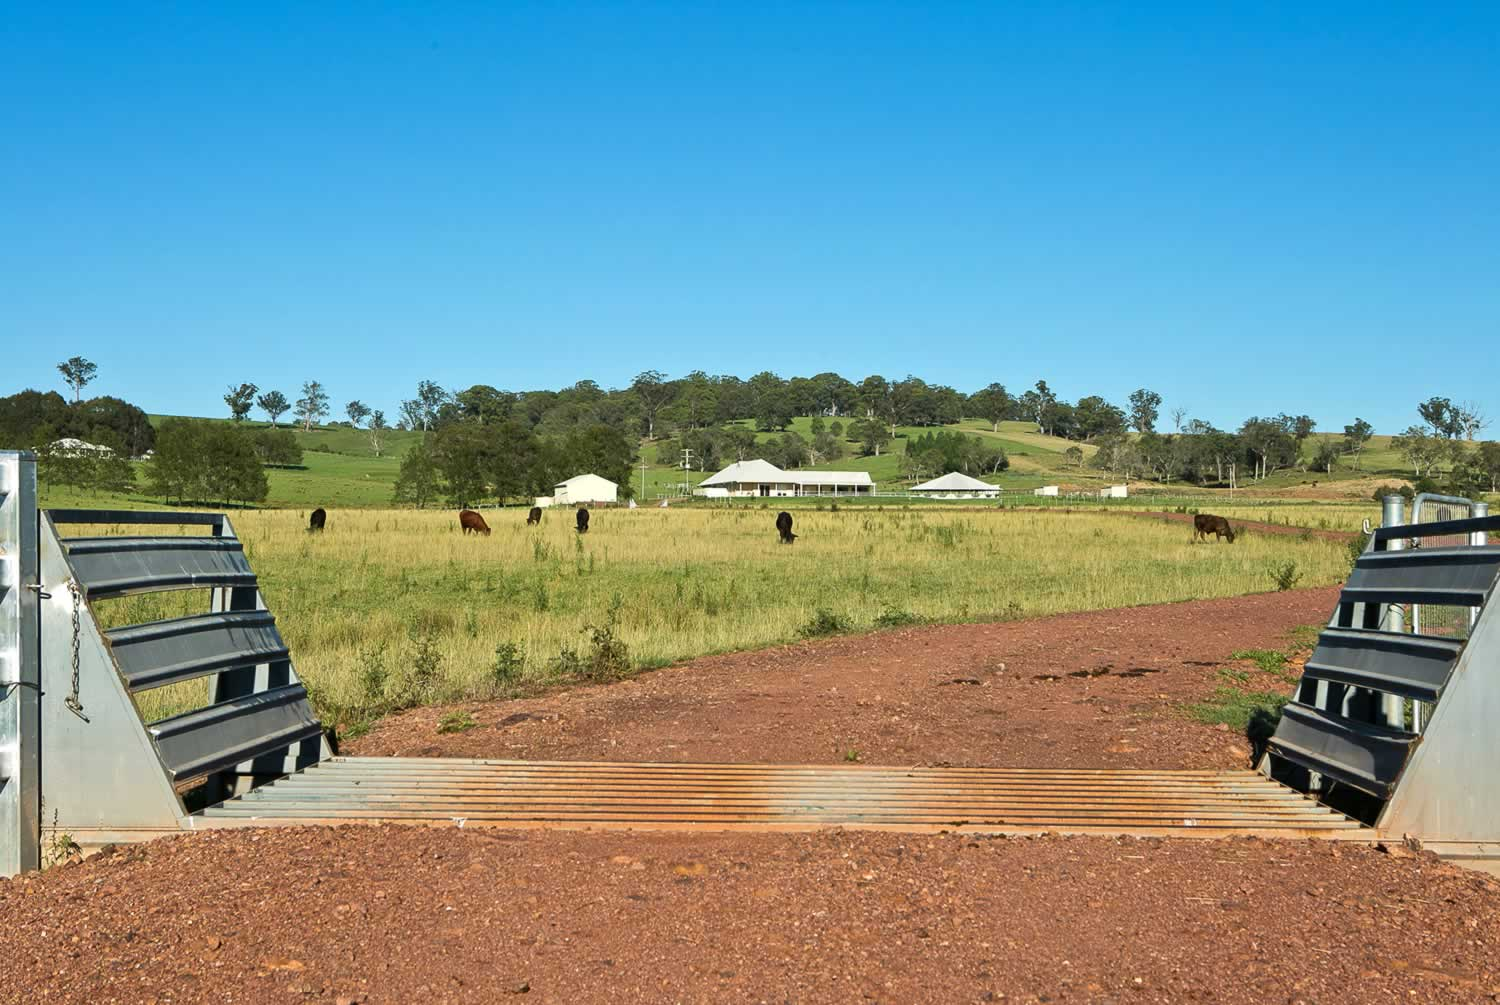 rural property for sale NSW australia